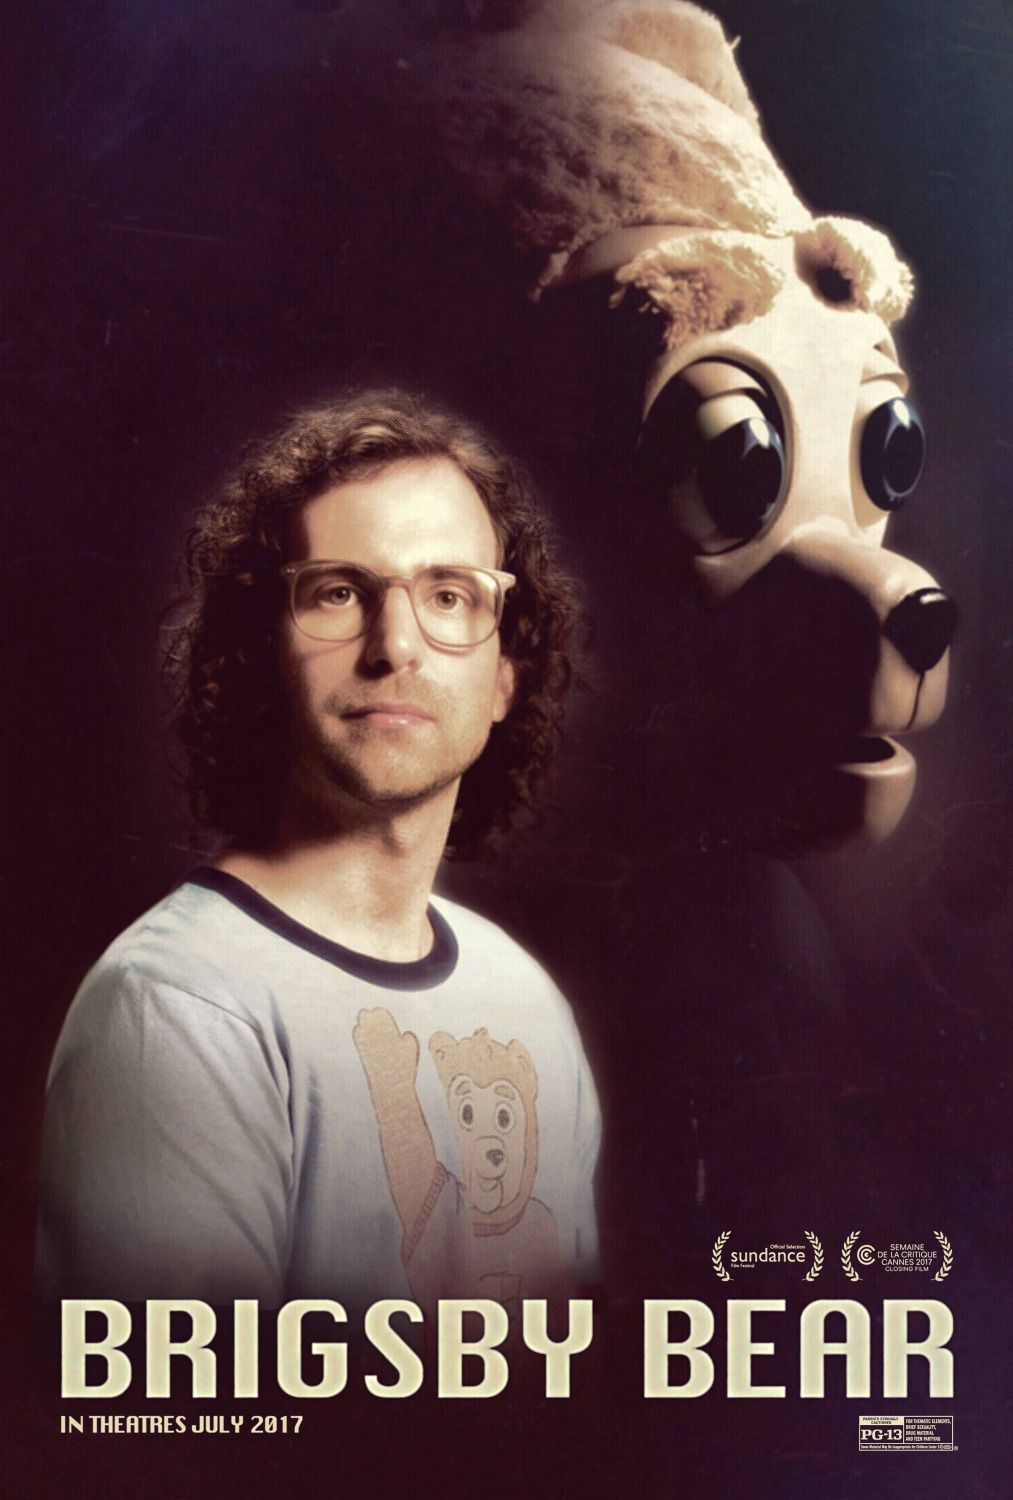 Brigsby Bear comedy film poster